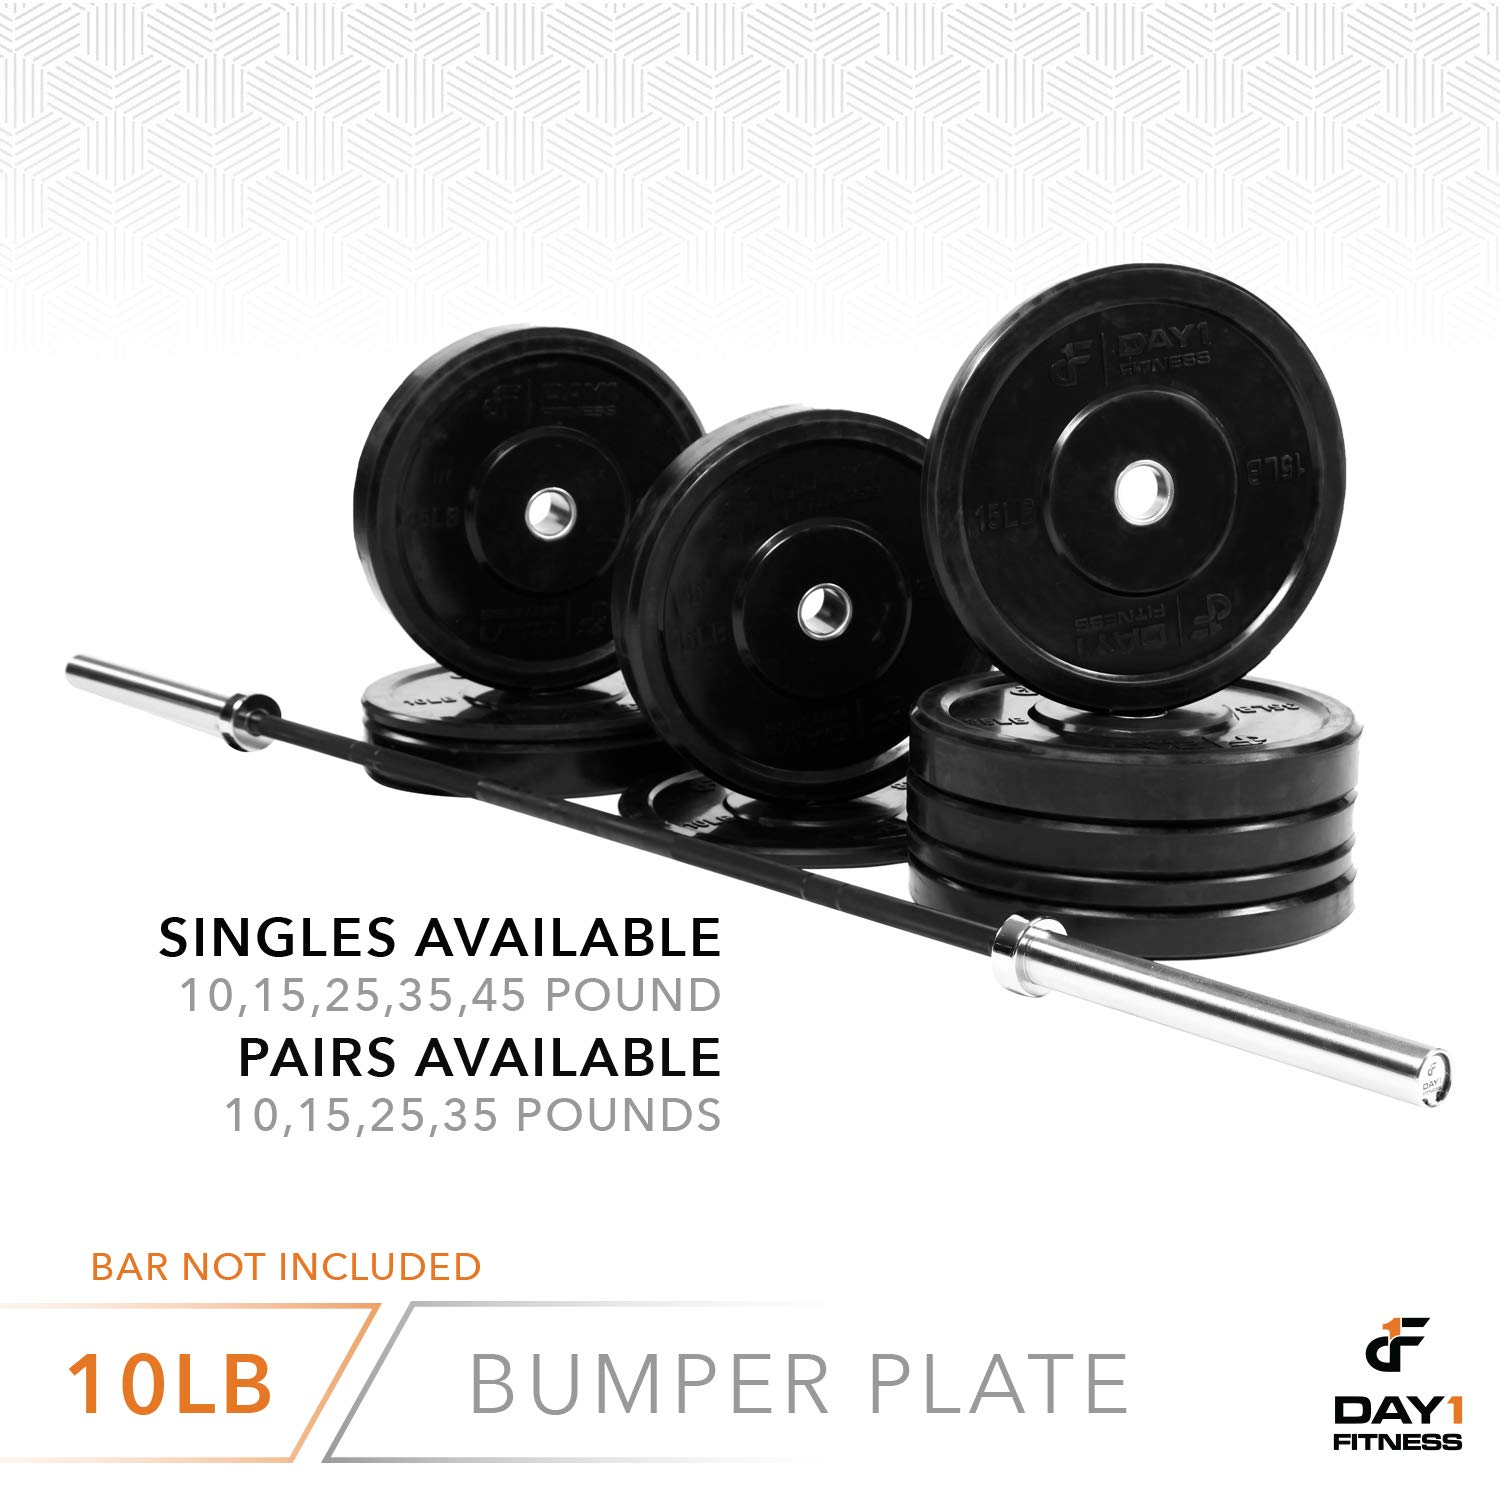 """Day 1 Fitness Olympic Bumper Weighted Plate 2"""" for Barbells, Bars – 10 lb Single Plate - Shock-Absorbing, Minimal Bounce Steel Weights with Bumpers for Lifting, Strength Training, and Working Out by Day 1 Fitness (Image #6)"""